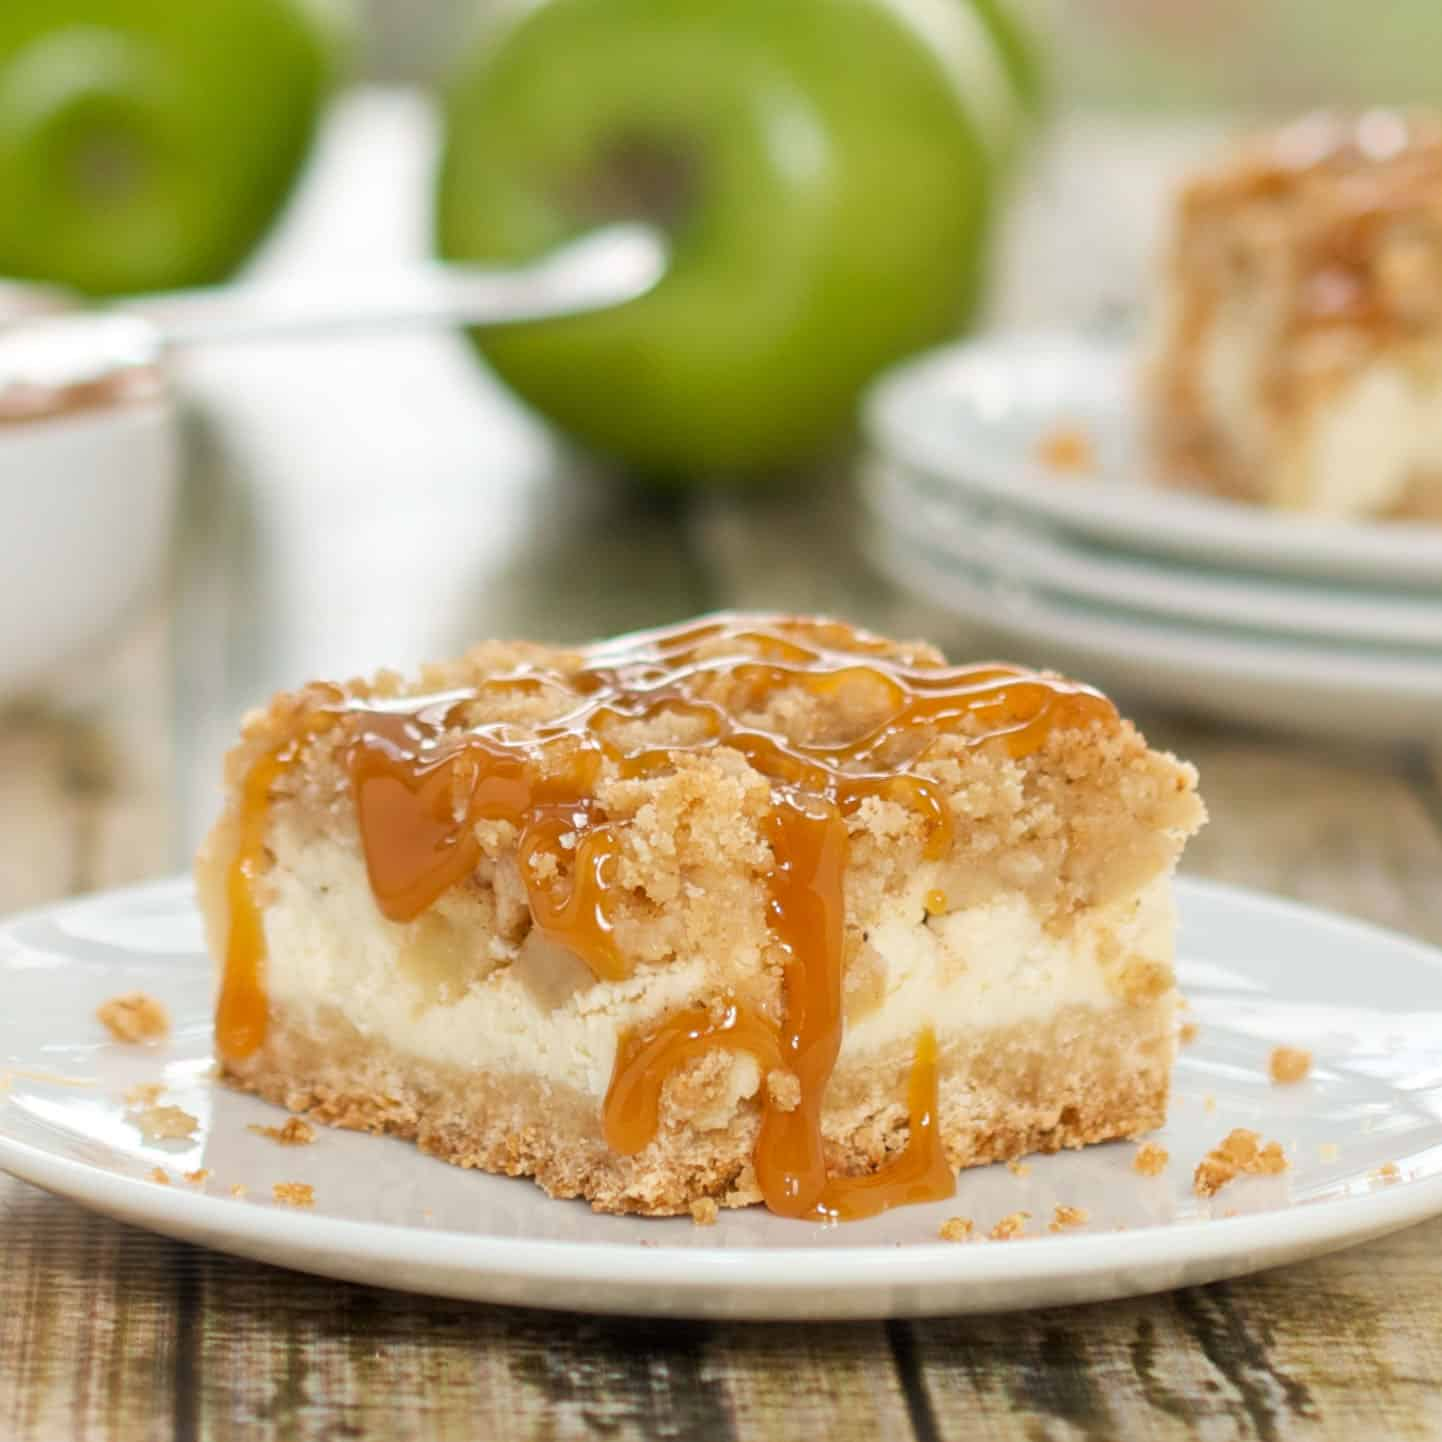 caramel apple cheesecake bar on a white plate